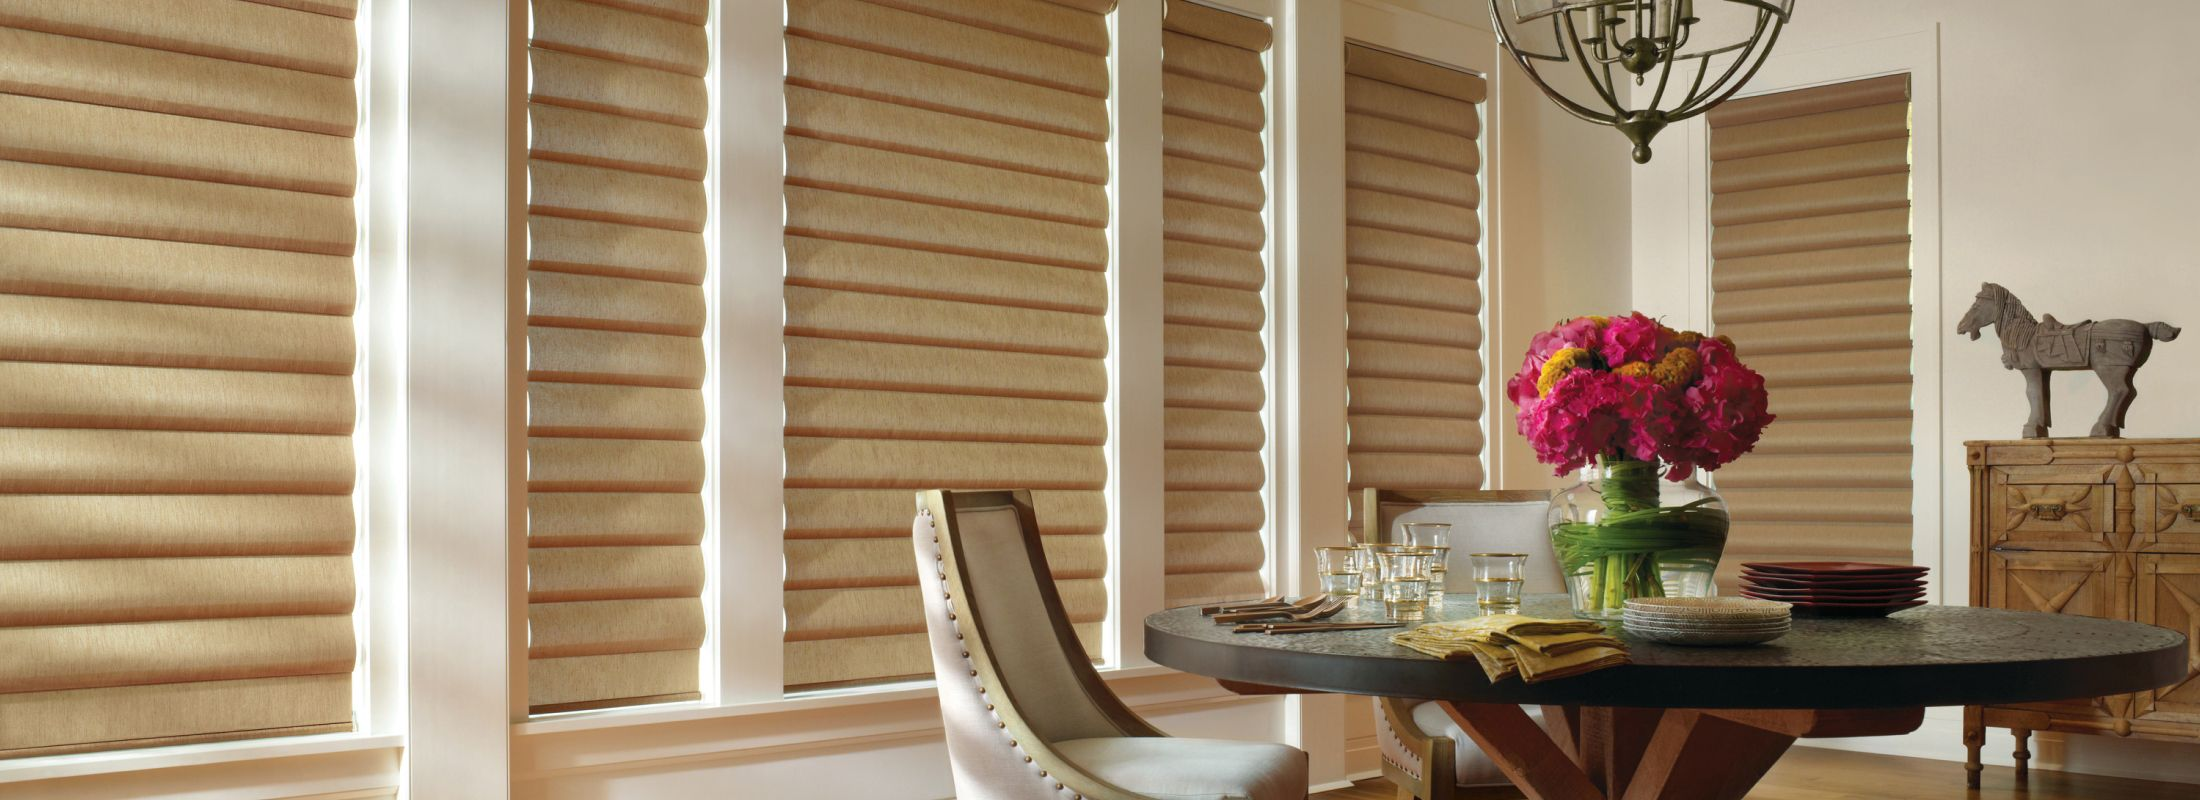 Window shadings in Alustra Charmeuse Bronzed Gold - Pirouette